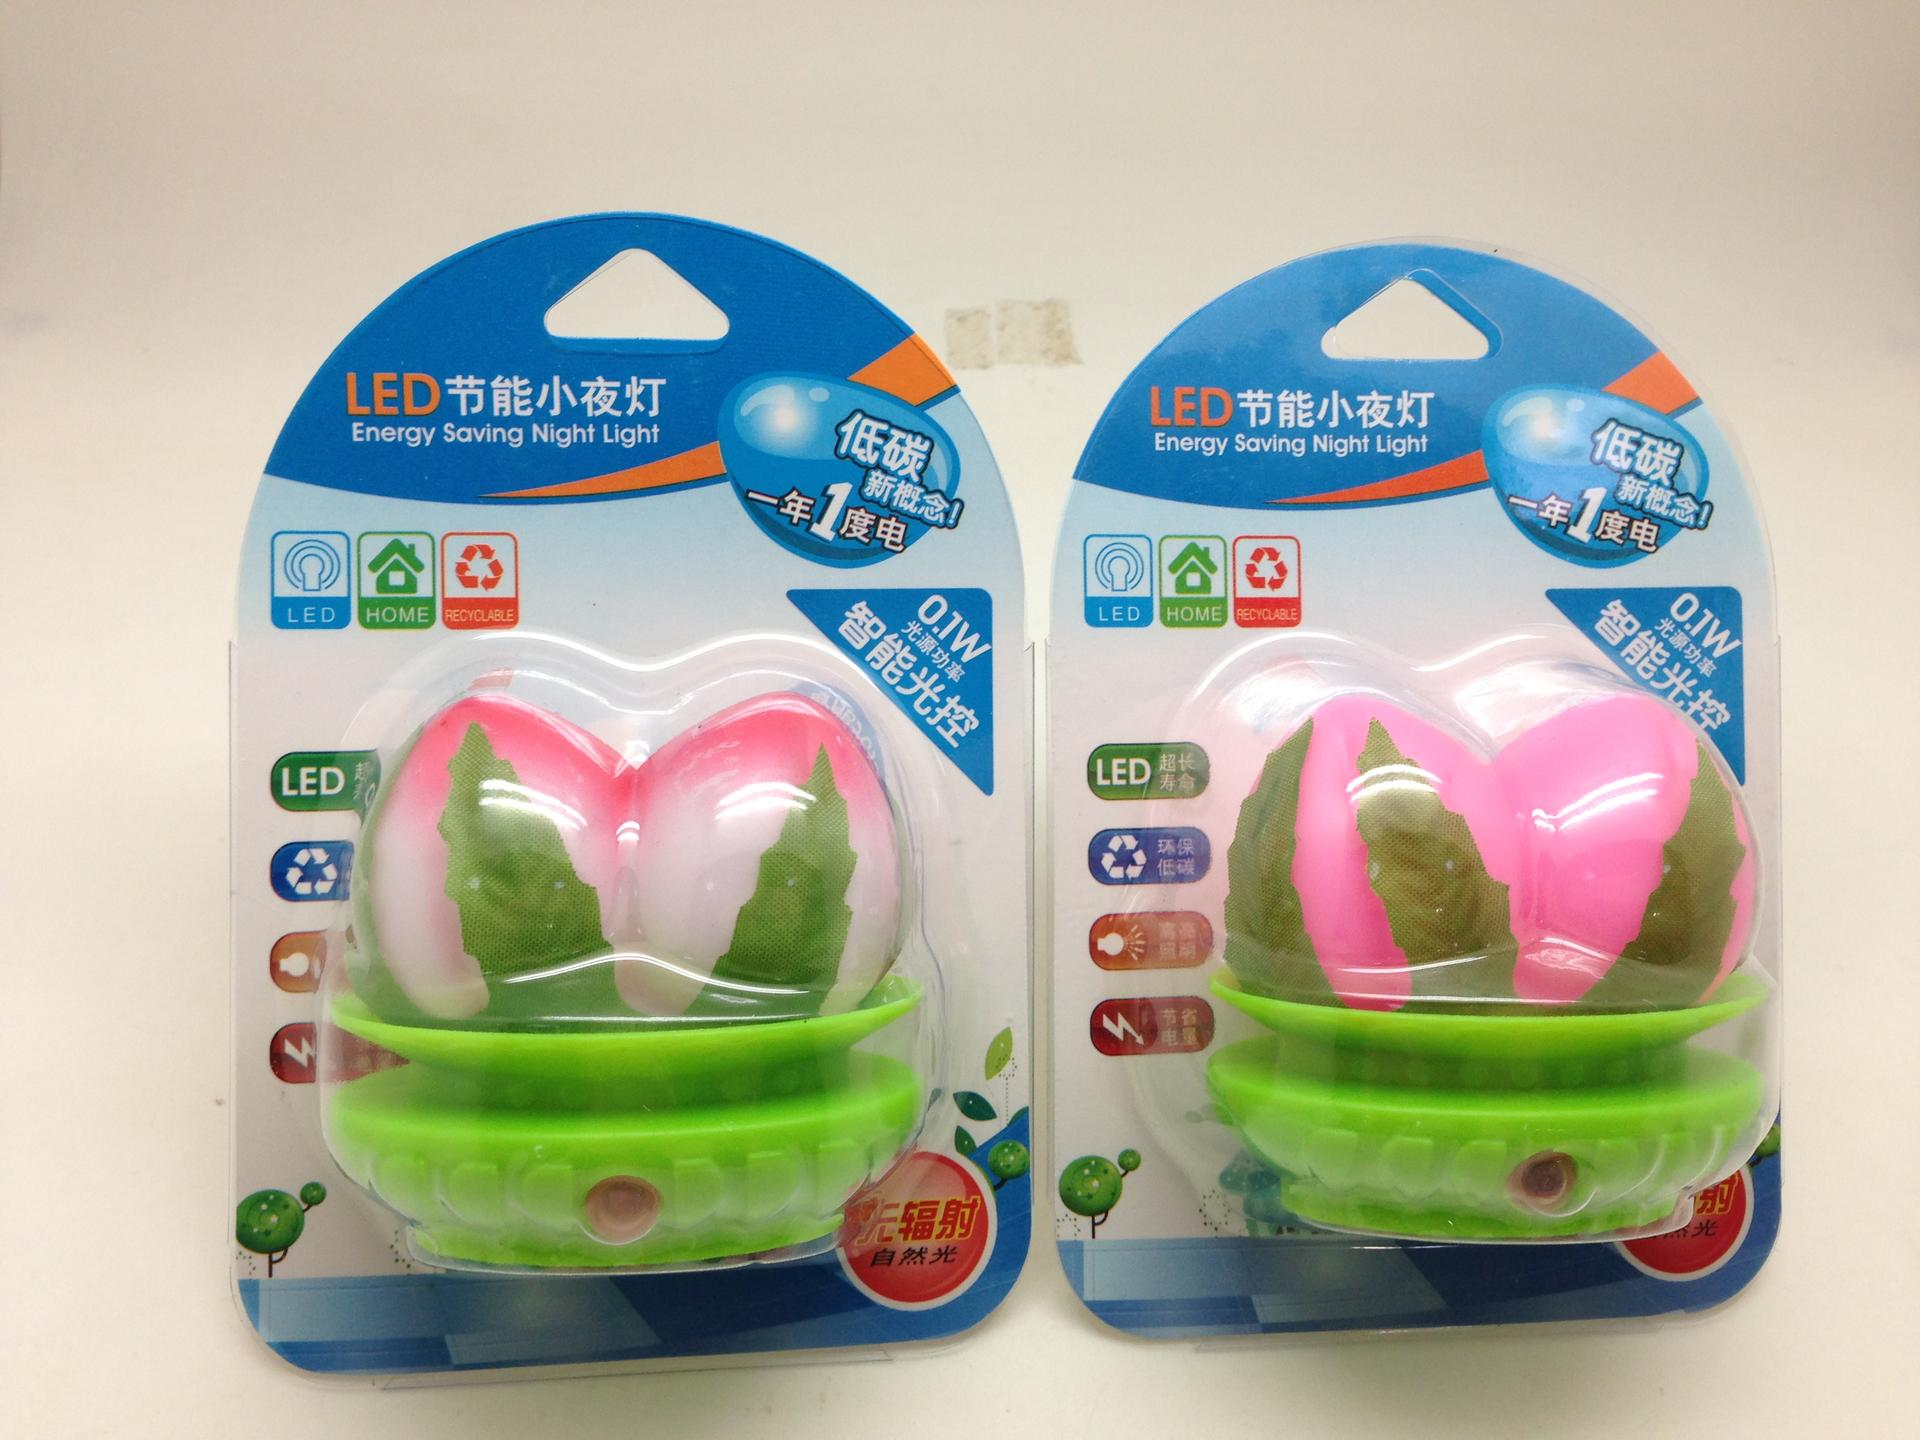 OEM fruit peach shape LED SMD mini switch plug in night light with 0.6W and 110V or 220V W014